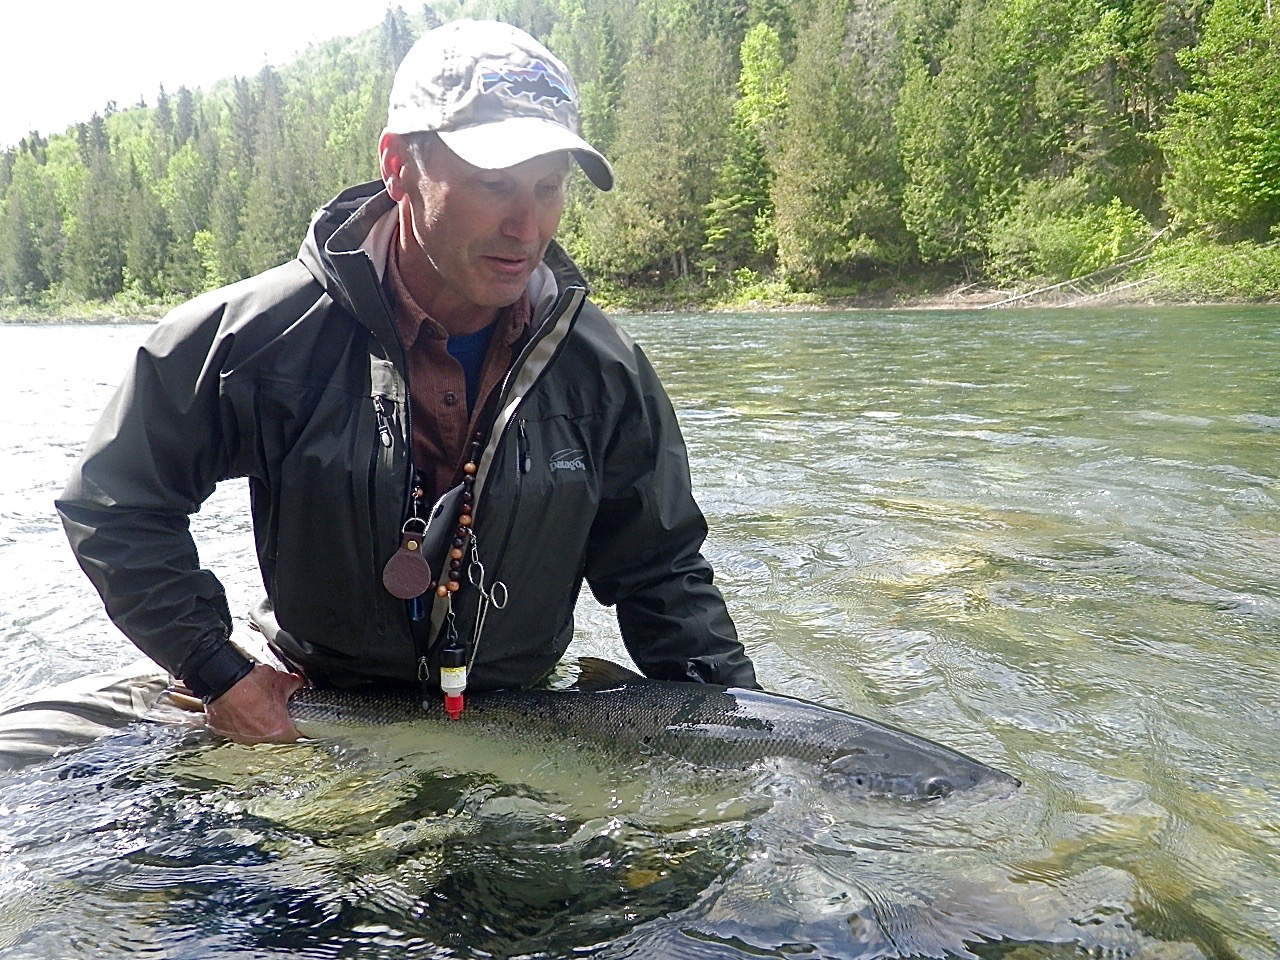 ASF president Bill Taylor releases a nice fish back for a swim on the Bonaventure, nice one Bill!